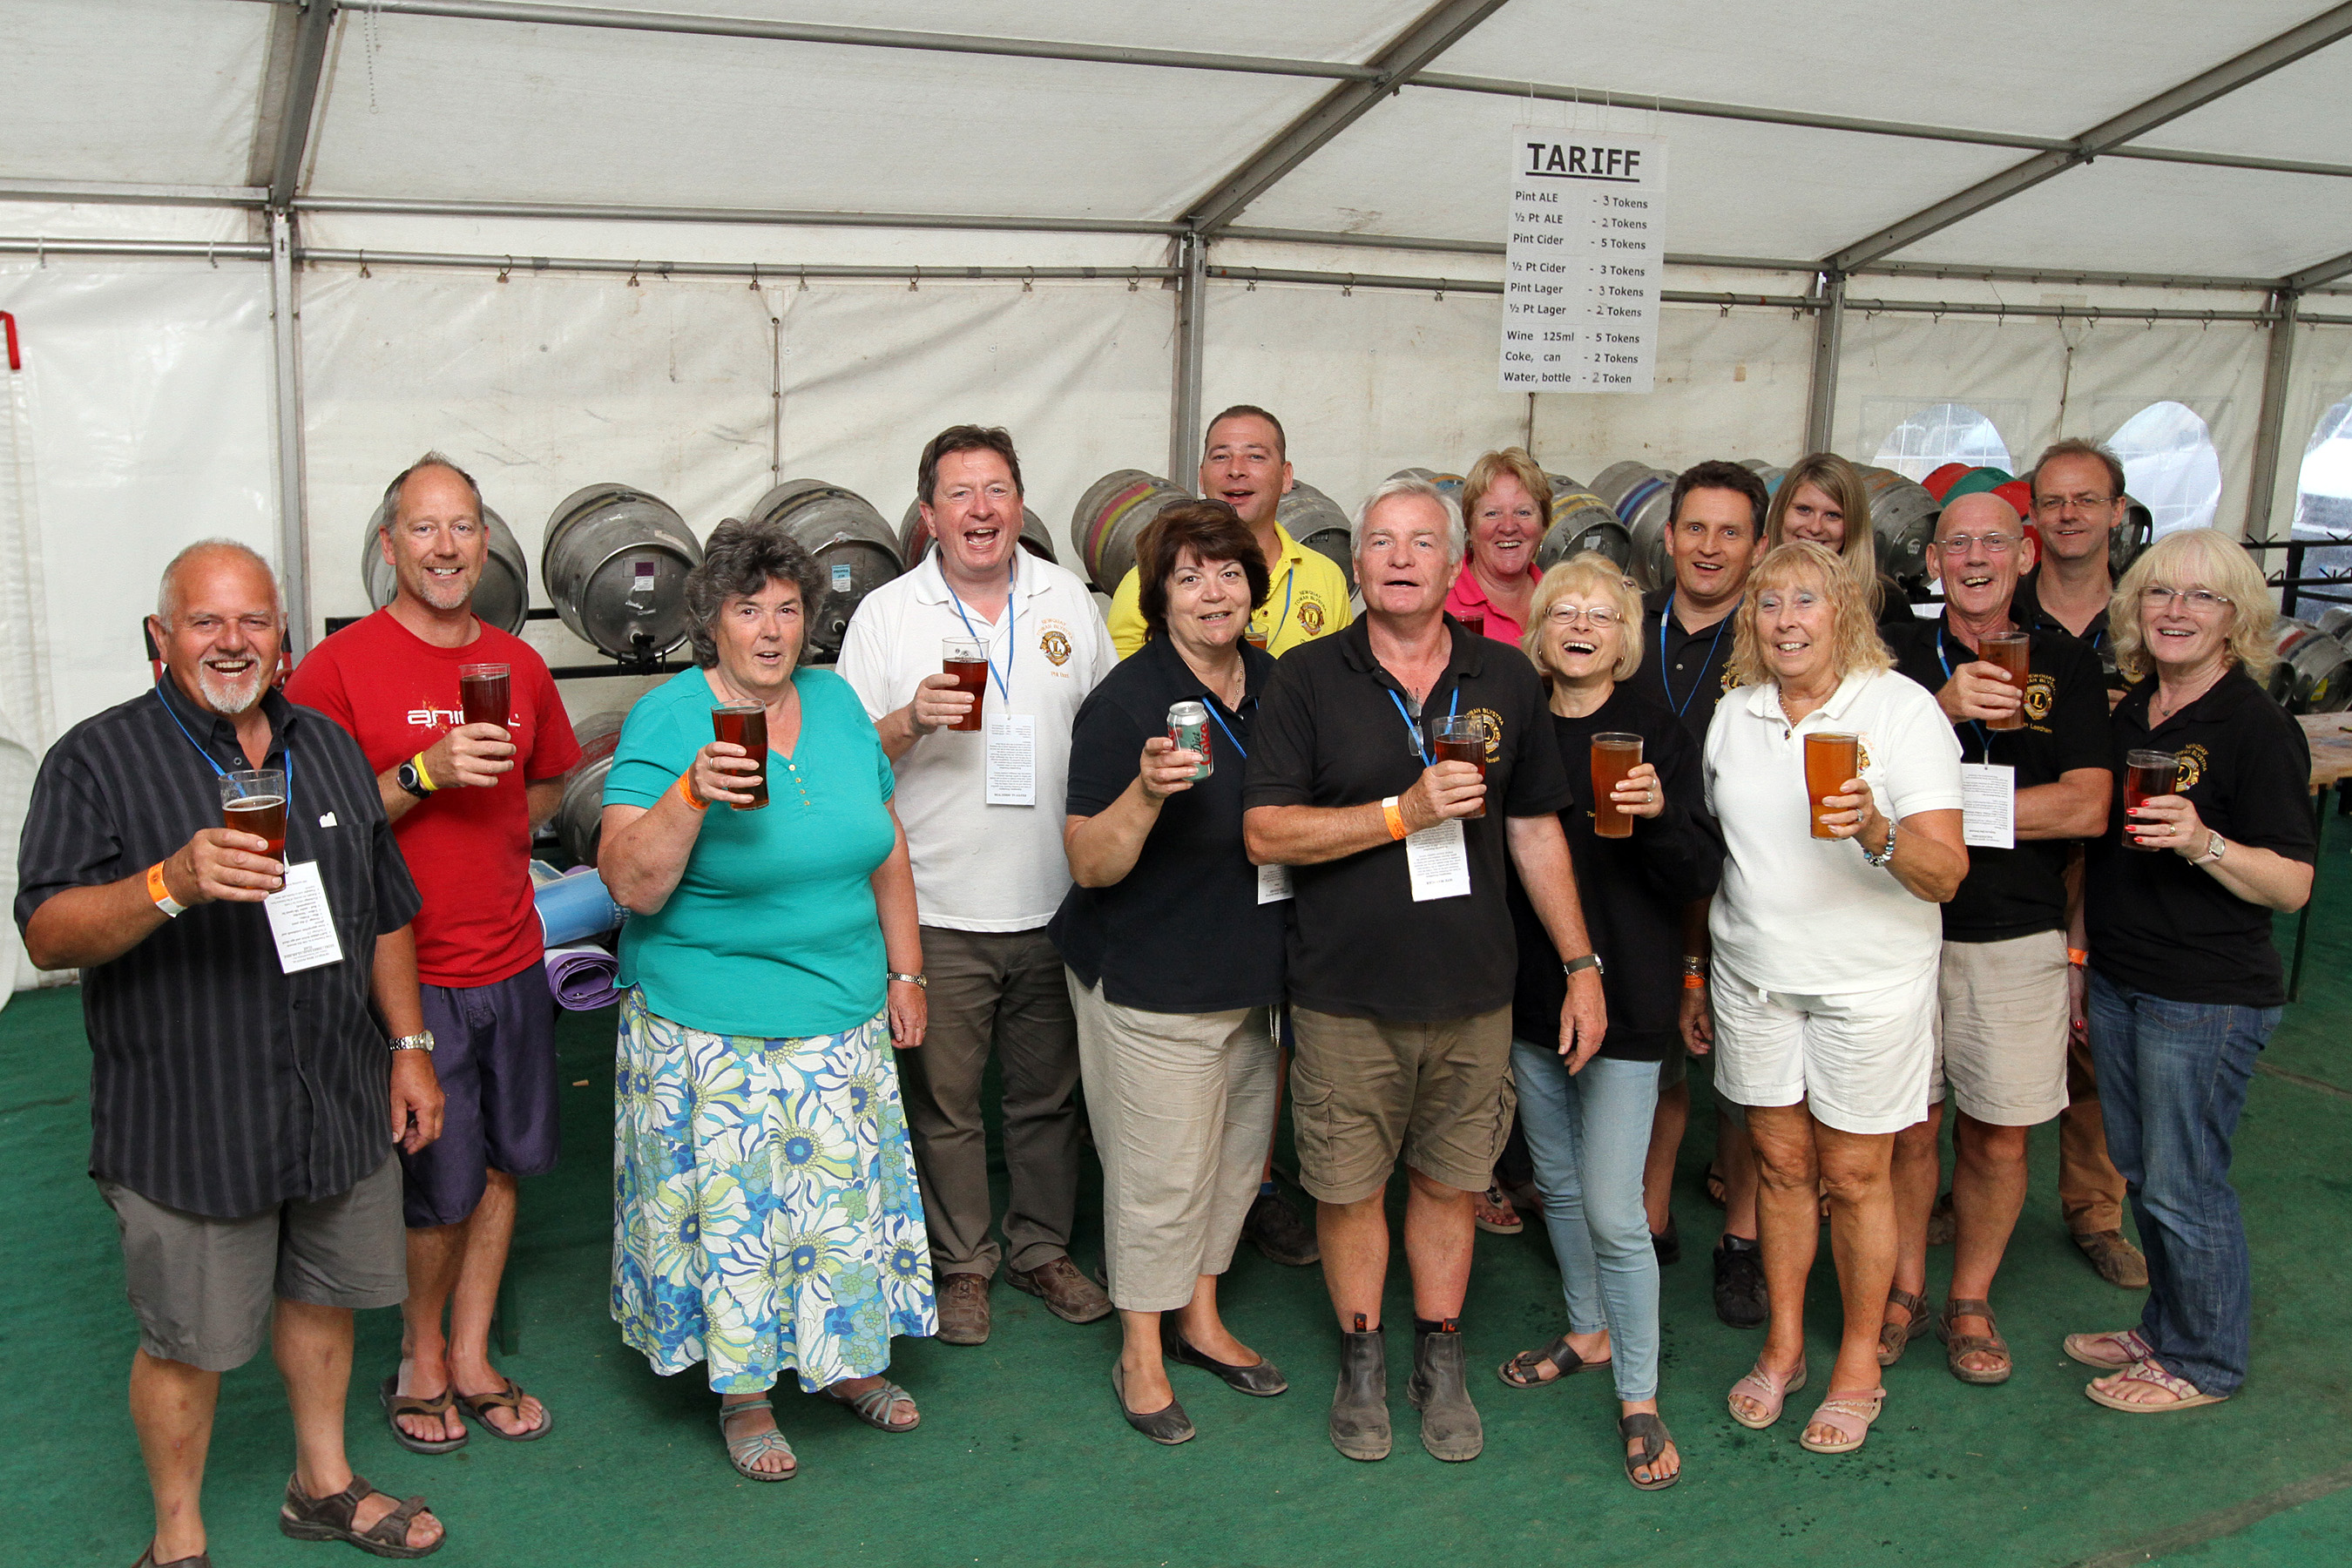 Newquay Beer Festival 2014 a huge success!